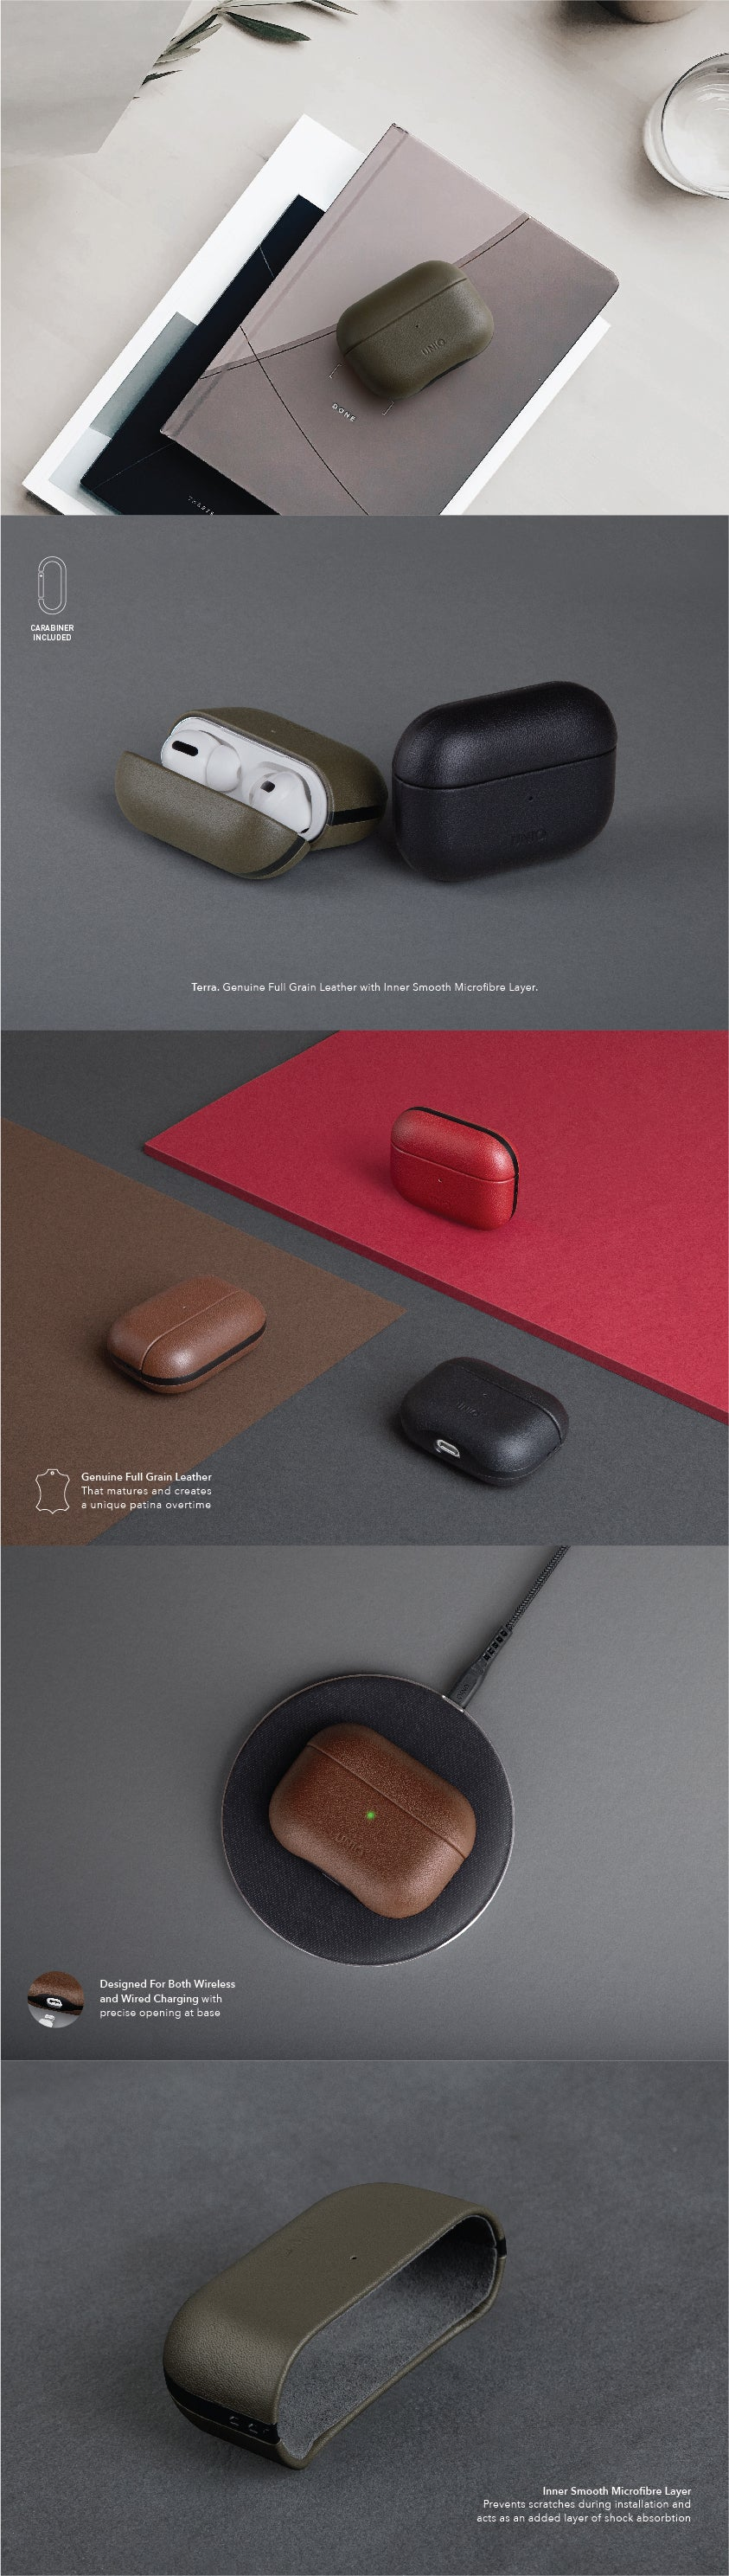 UNIQ Terra Genuine Leather AirPods Pro Case